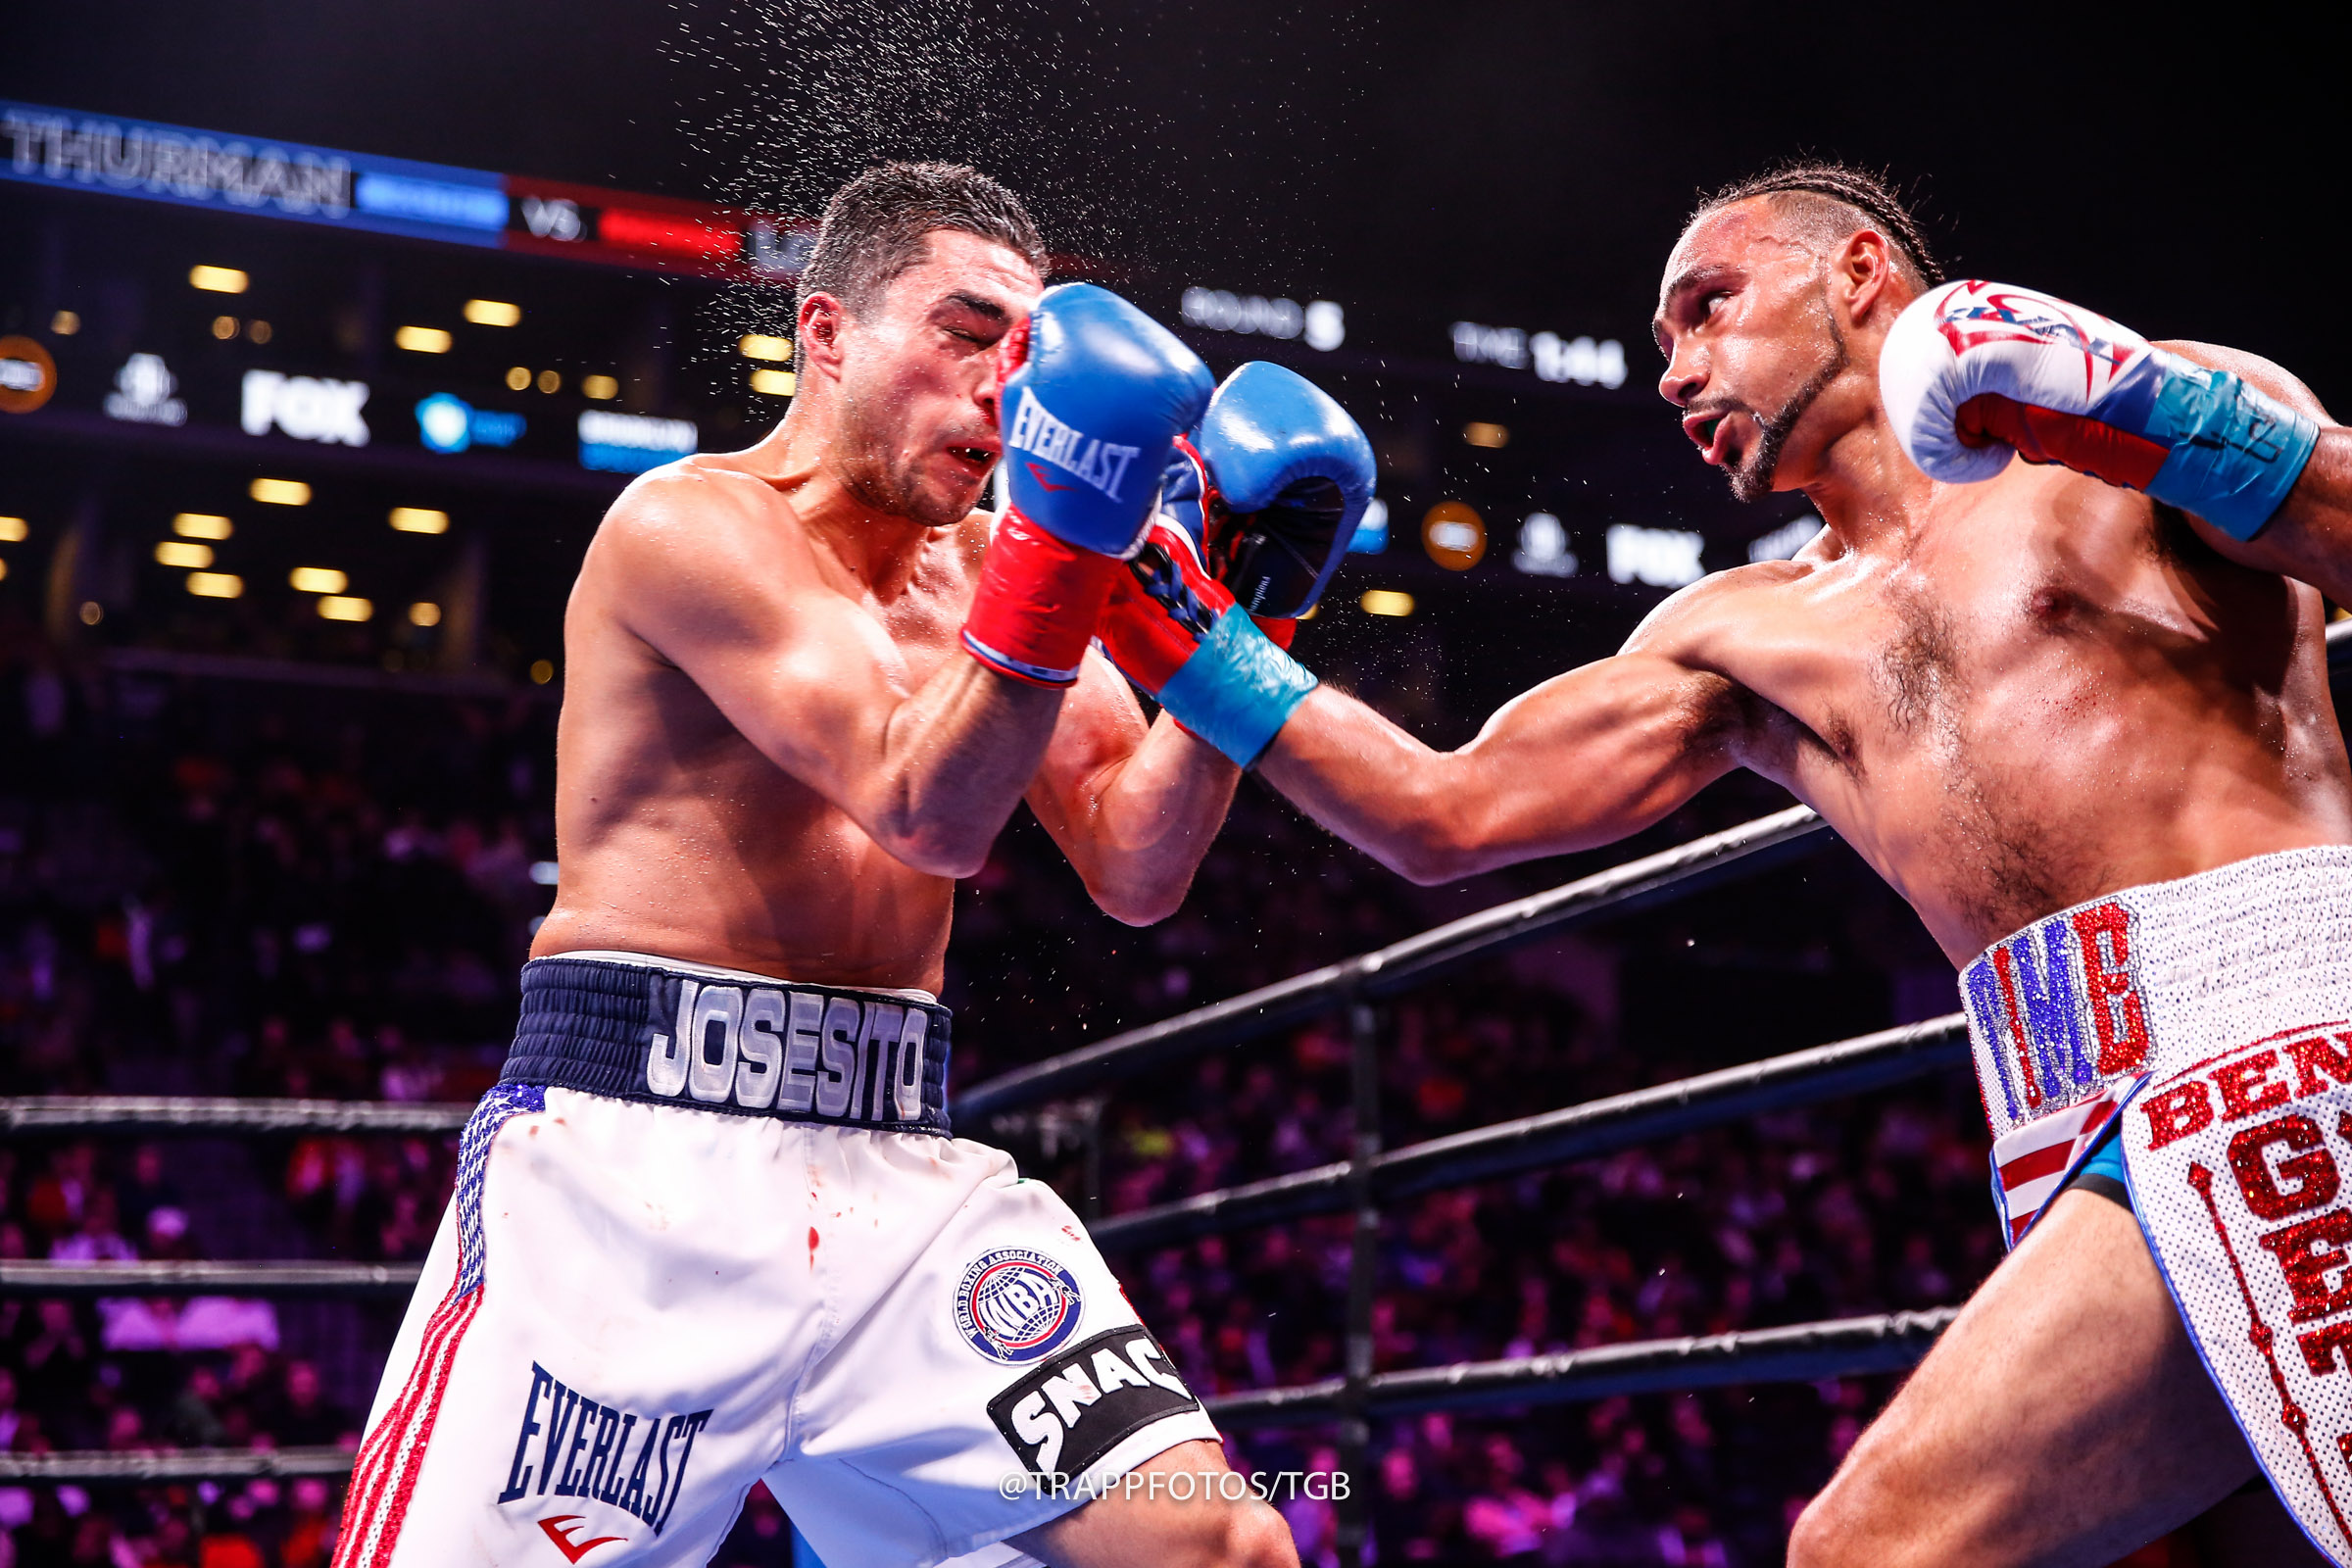 Josesito Lopez (left) gave Keith Thurman hell during the second half of their WBA welterweight title bout but the defending beltholder dished out his share of punishment. Photo by Stephanie Trapp/TGB Promotions